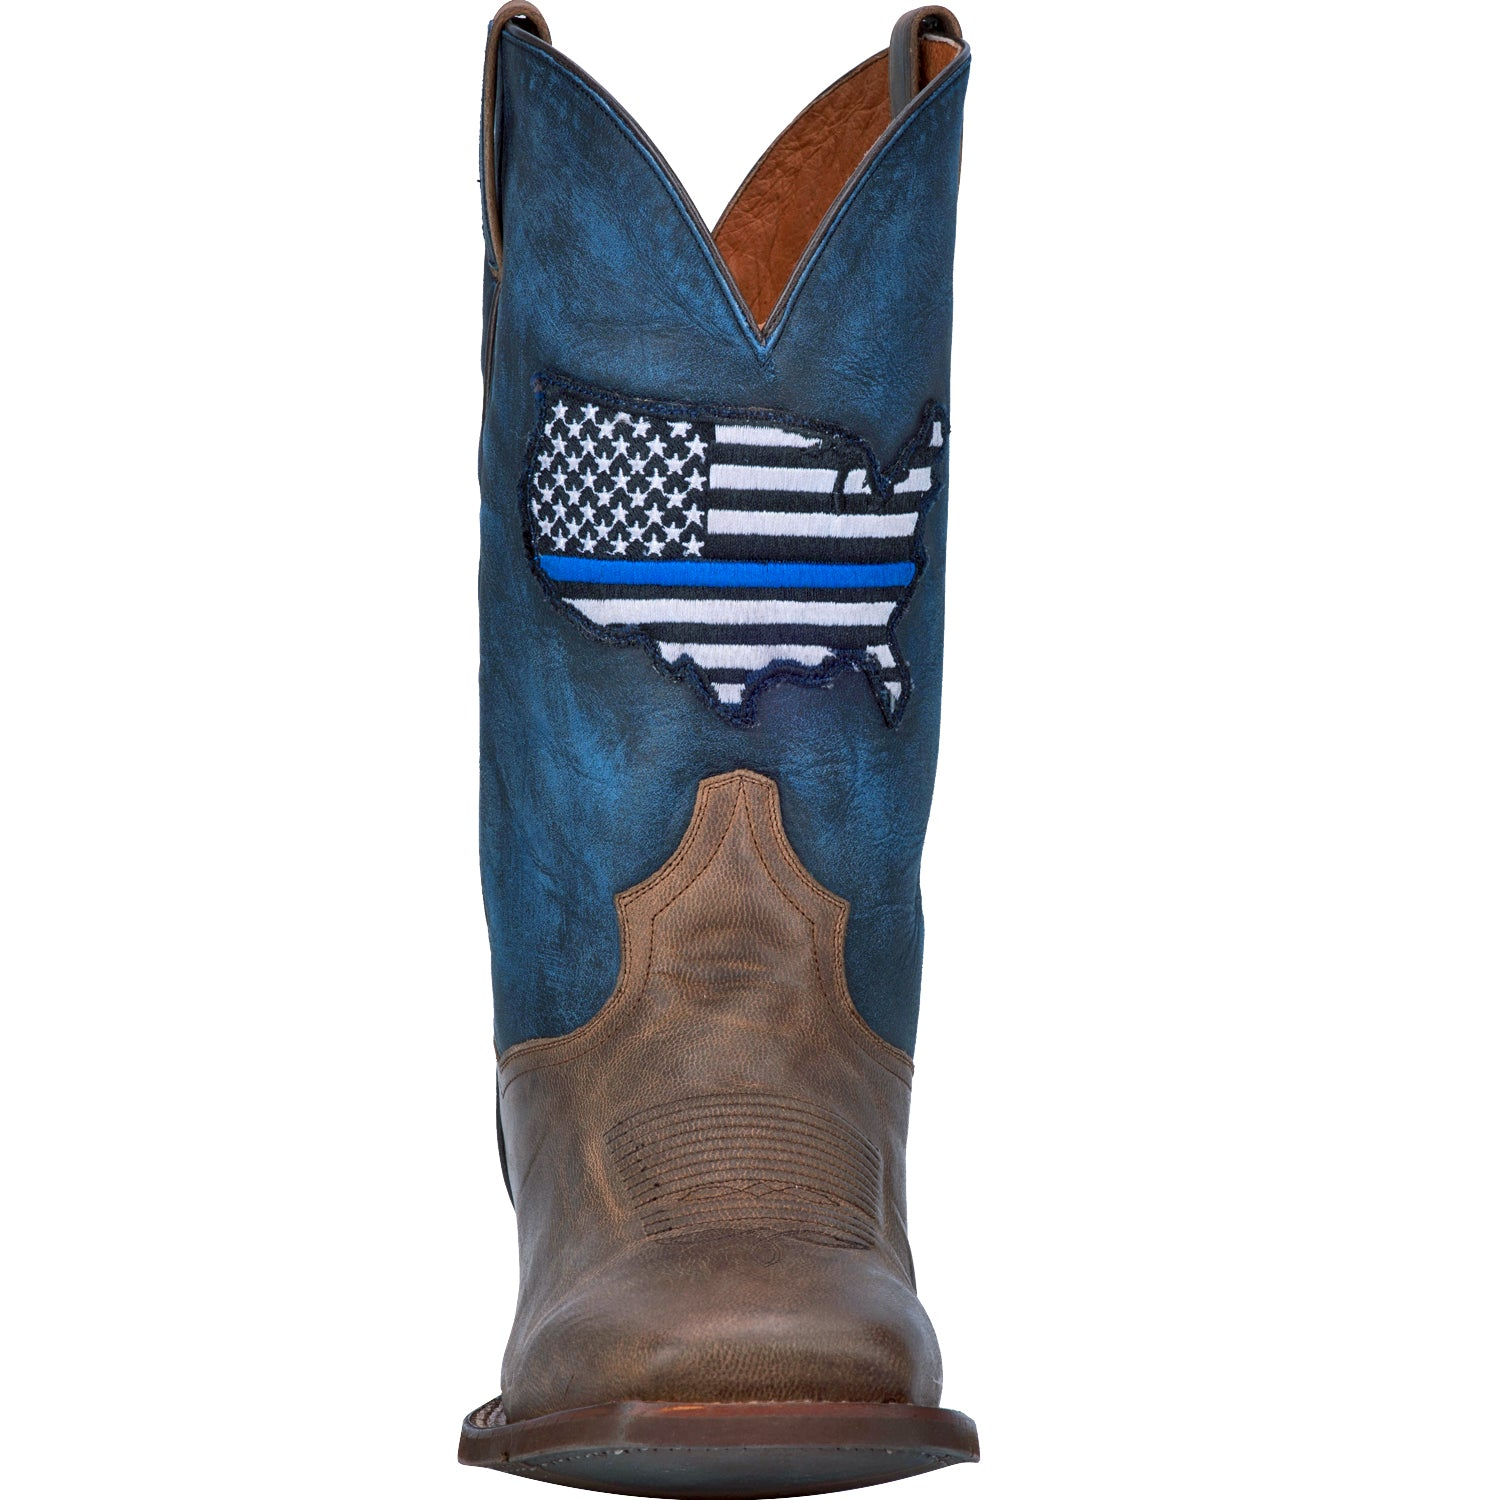 THIN BLUE LINE LEATHER BOOT 4197236211754